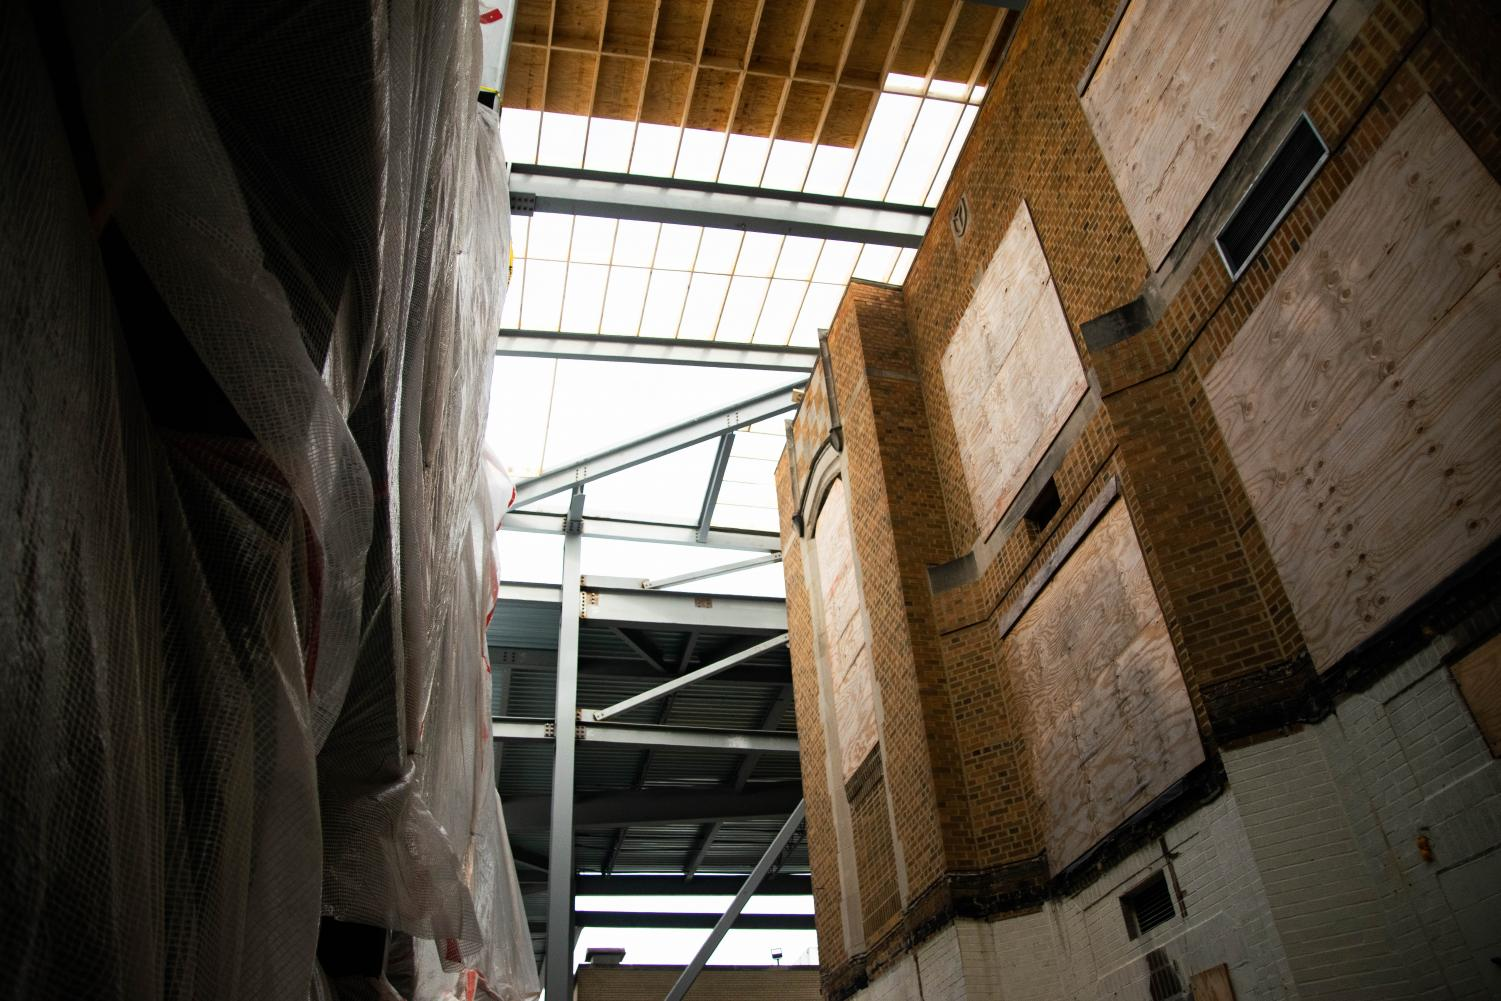 A partial view of the new skylight, meant to allow additional natural light into certain hallways.